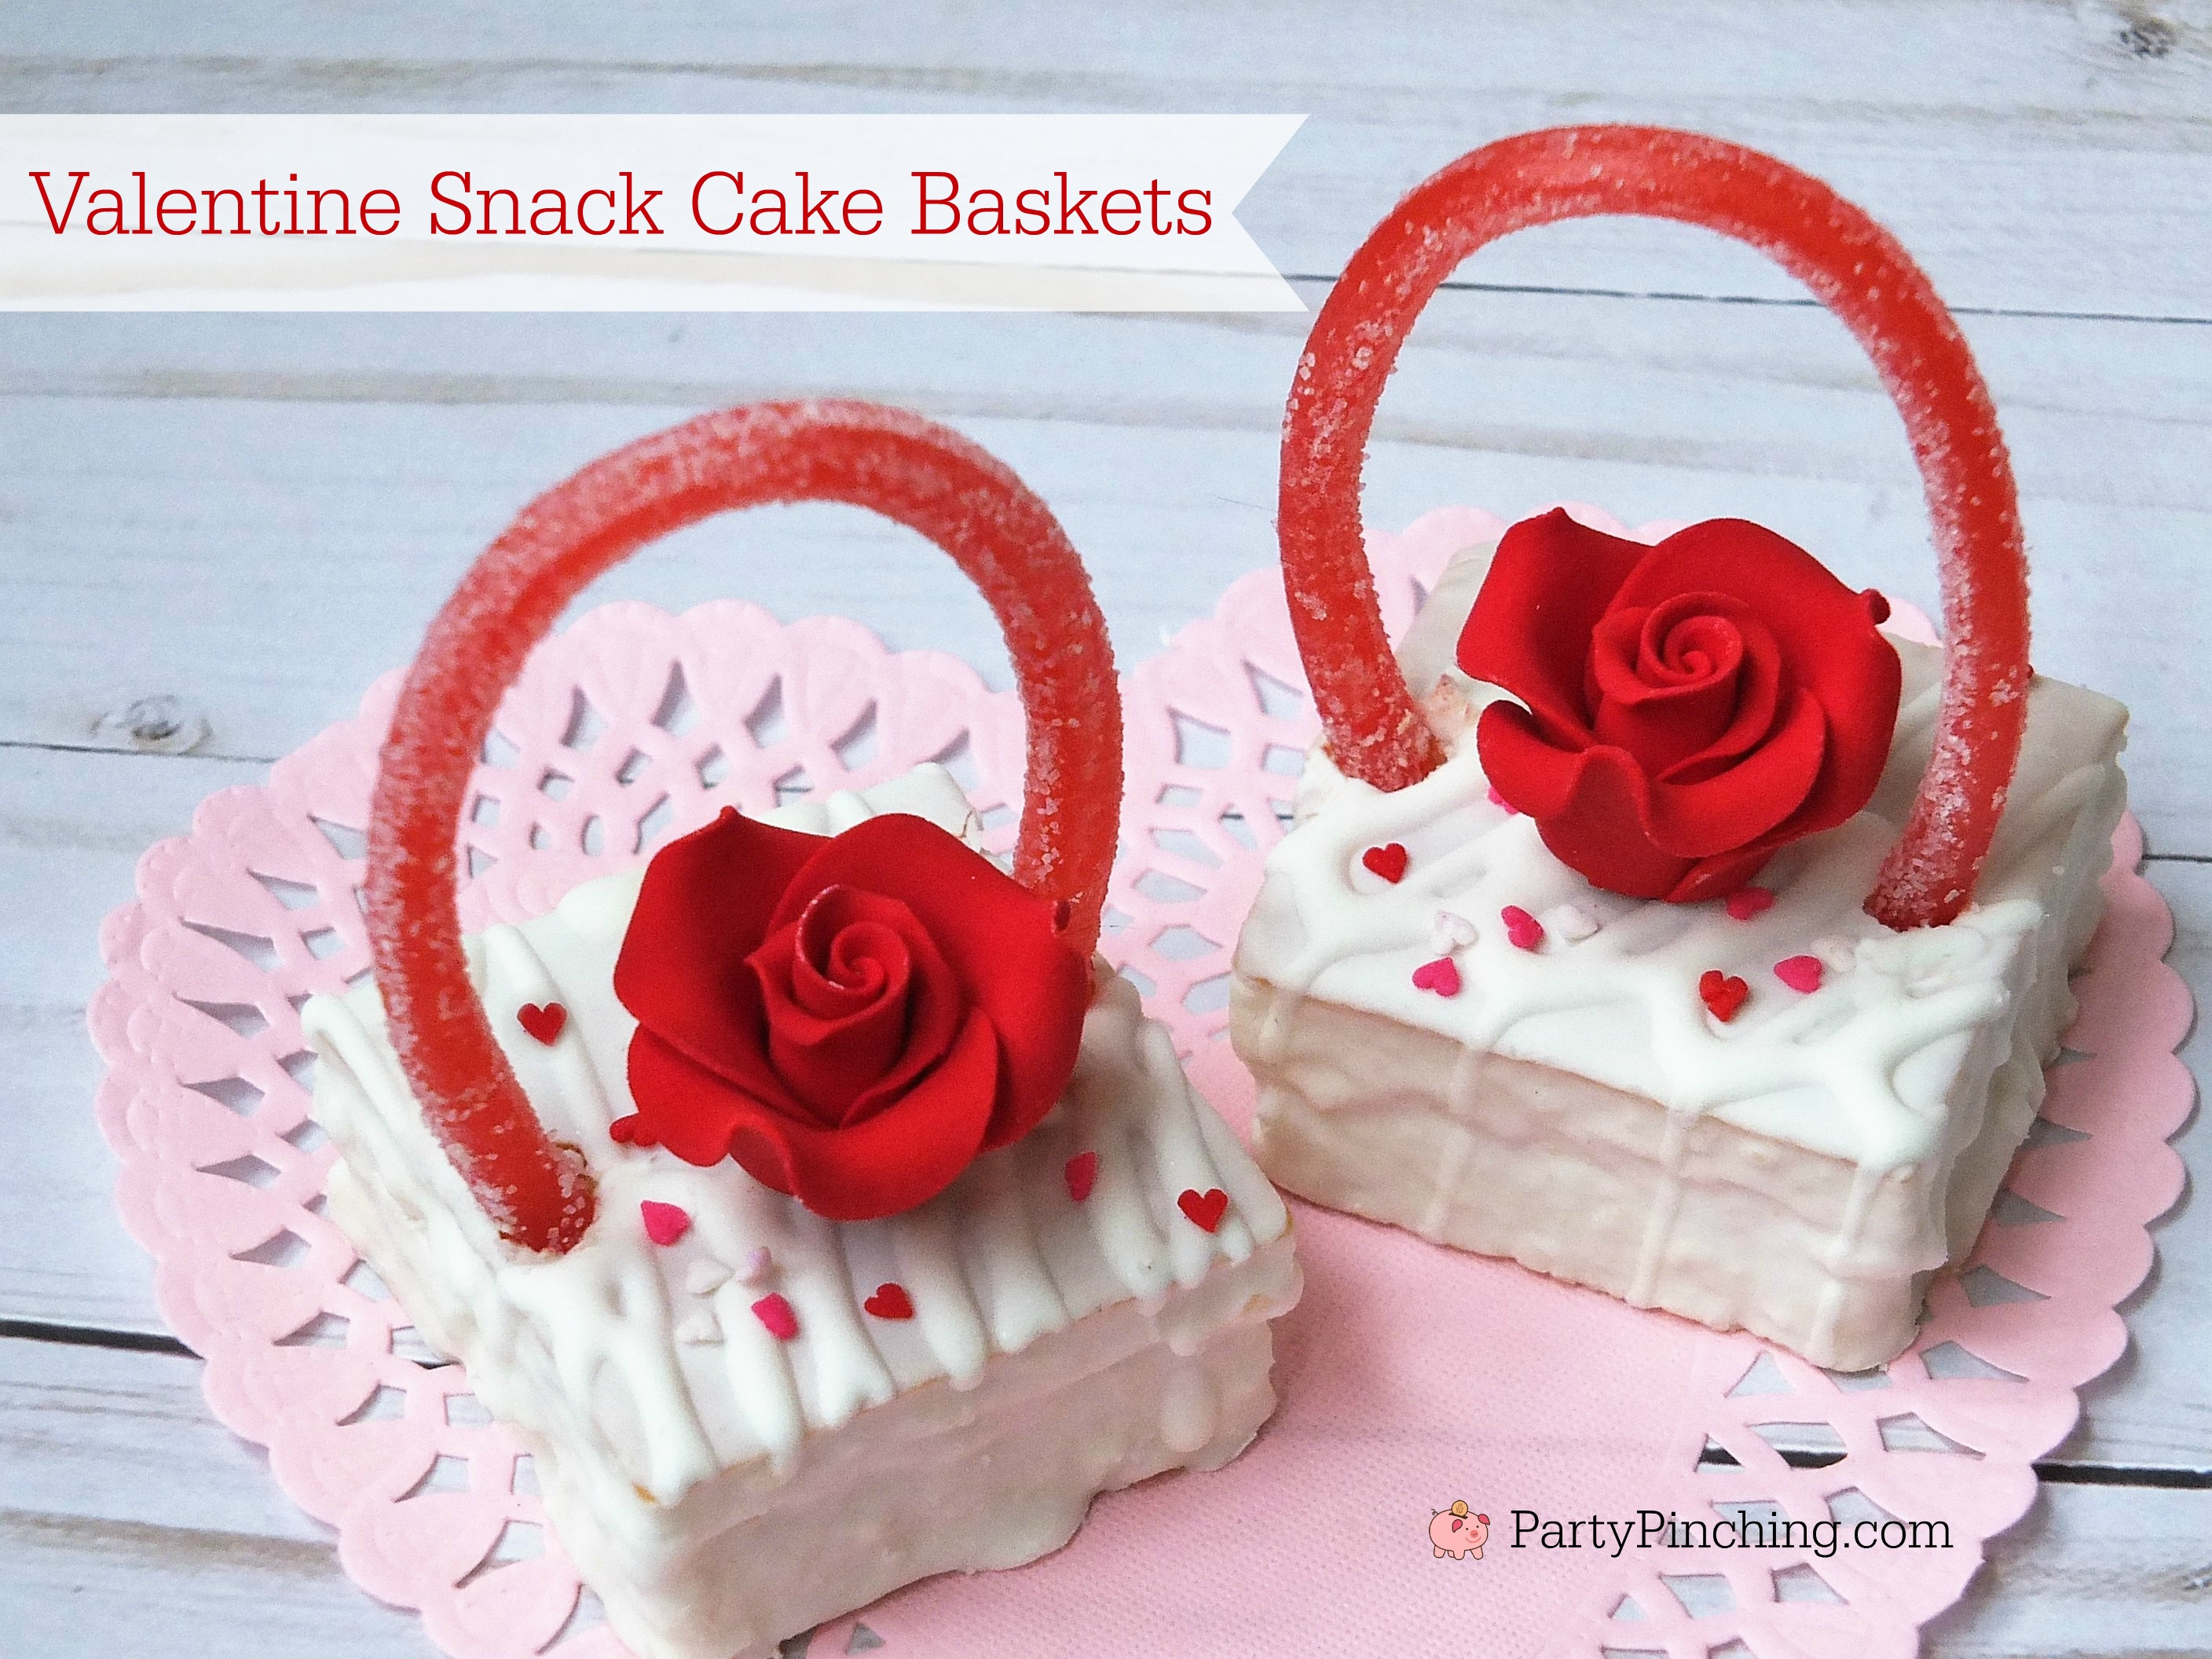 Easy Valentine's Day dessert ideas, Valentine snack cake baskets, cute food, fun food for kids, Valentine's Day party classroom idea treats, Little Debbie Fancy Cakes, adorable pretty Valentine's Day dessert ideas